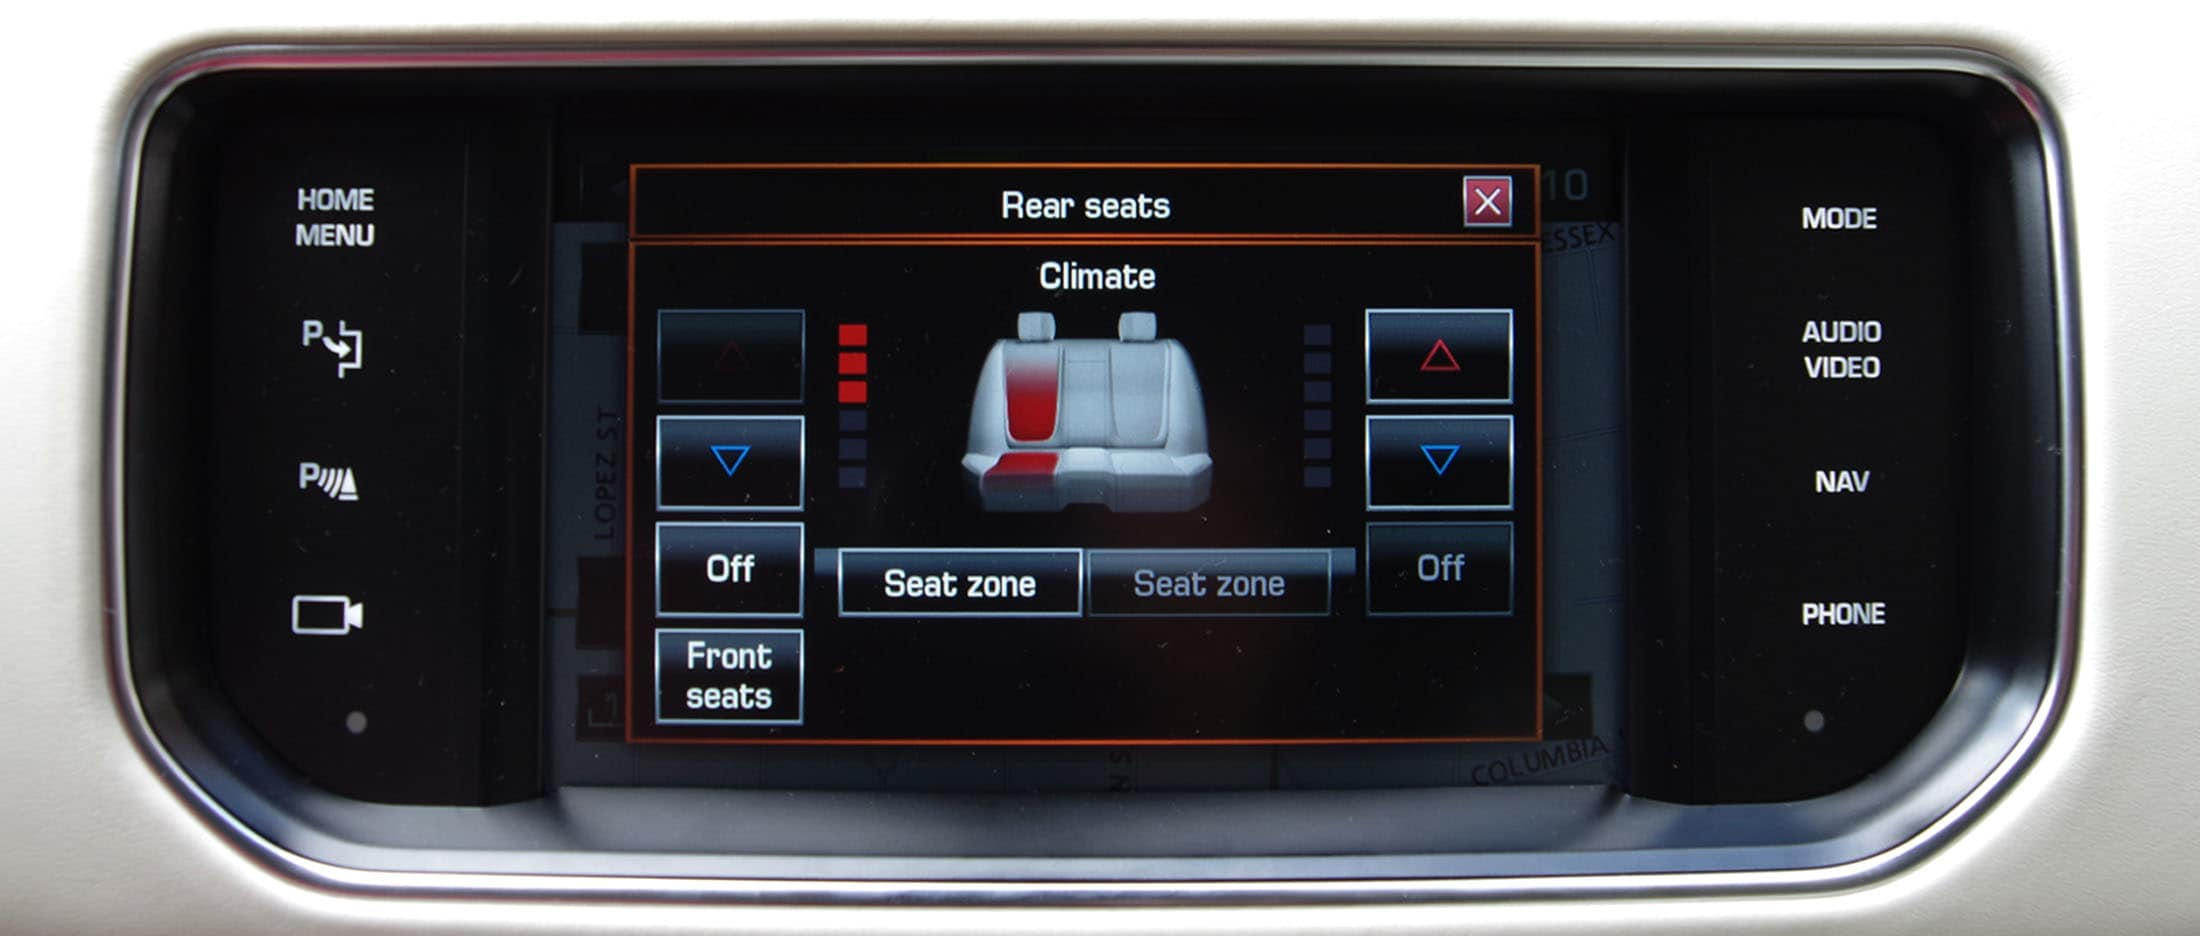 You can get heated and cooled rear seats, or you can upgrade to massaging seats in the back.